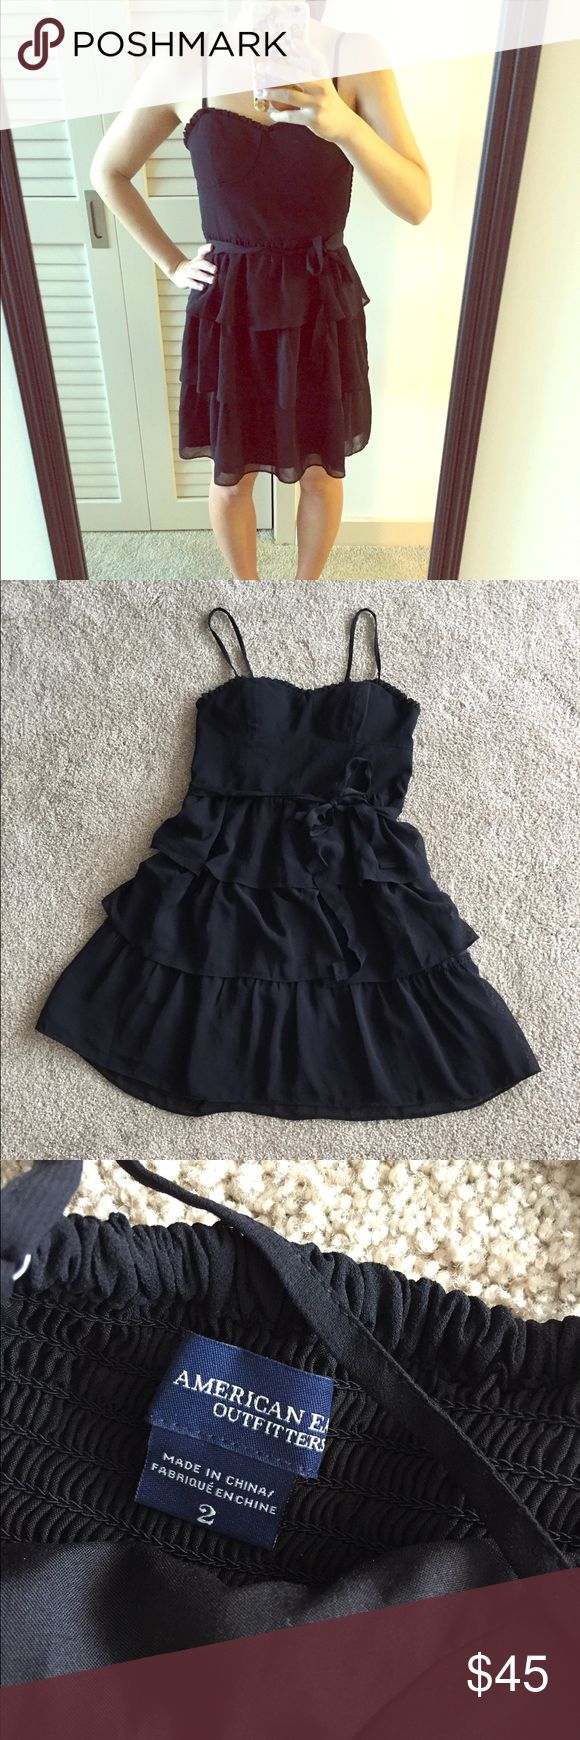 Black bow American Eagle dress. Black bow American Eagle dress. Gently used in good condition. No trades. Adjustable straps and built in cups. Please ask all questions before purchasing and use the offer button thanks! American Eagle Outfitters Dresses #americaneagleoutfitters